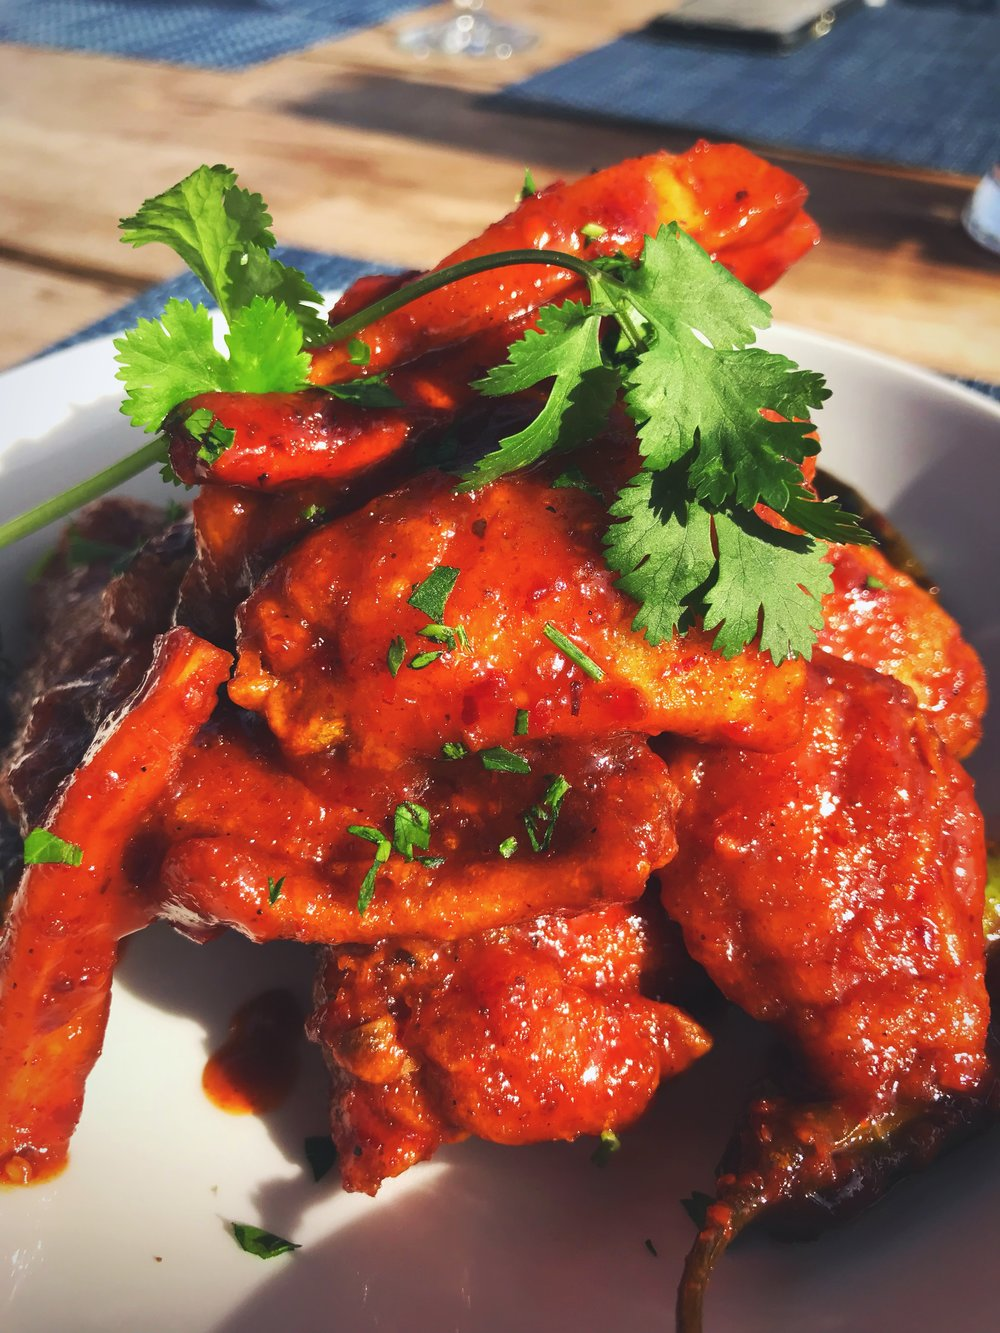 Crispy Fried Chicken Wings with a Red Chile Lime Glaze - Photo Credit: Mechelle Miller